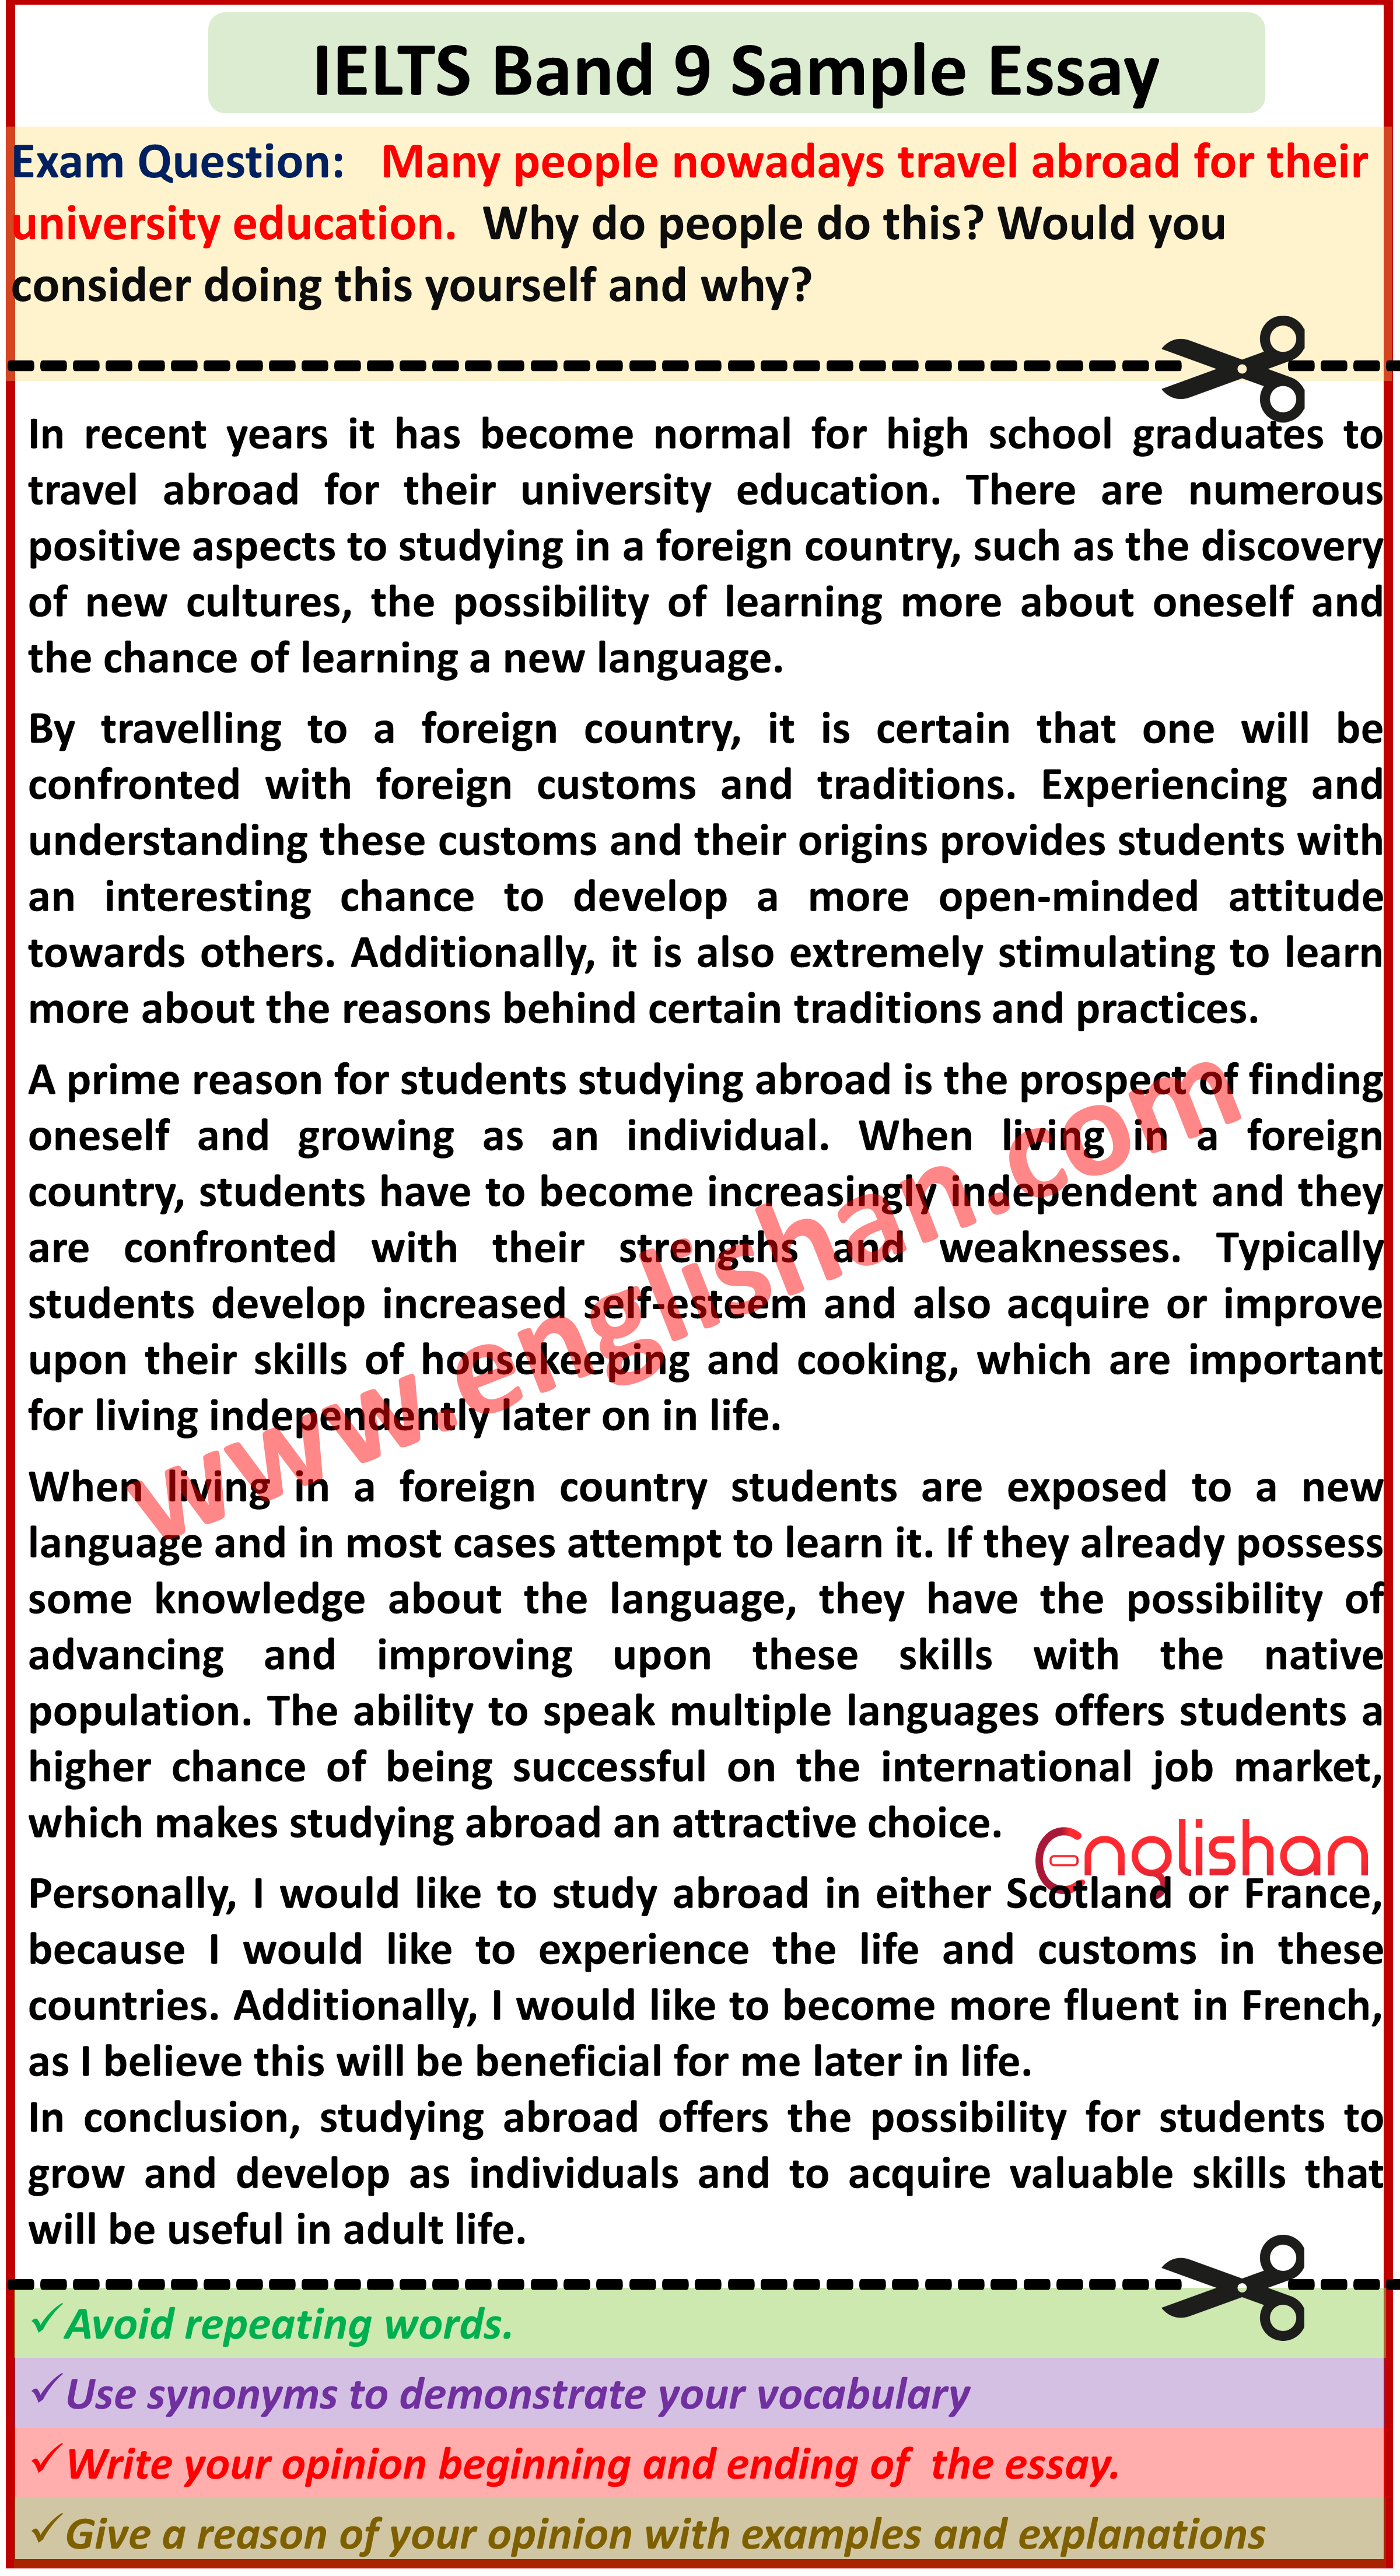 ielts sample essay topics 2020 band 9 in (with images linkedin resume samples first cv no work experience summary for it